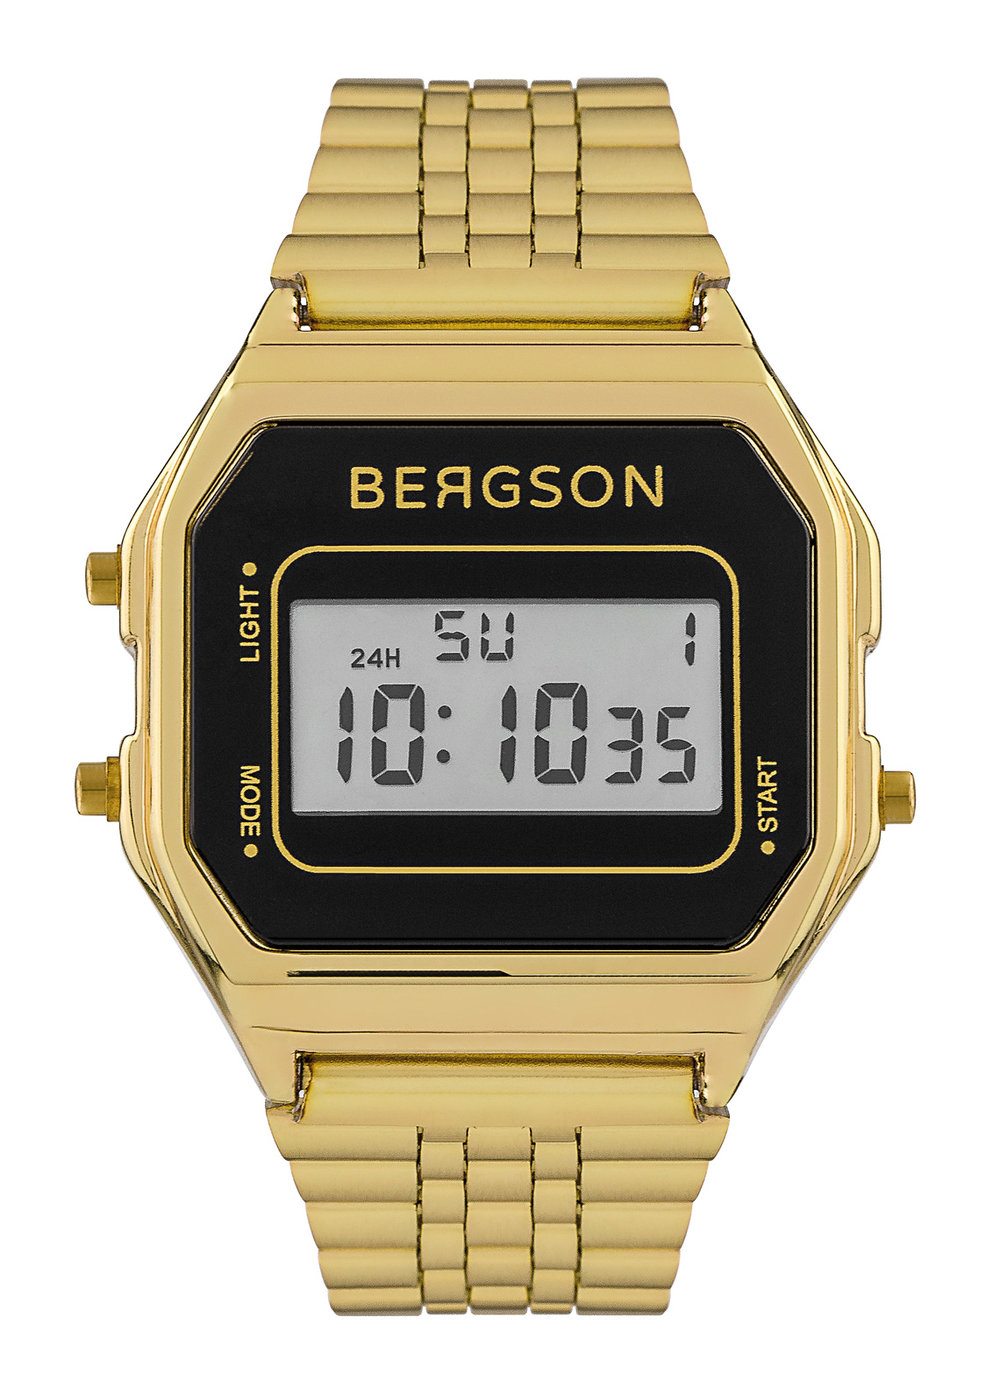 bergson_watches_BGW8159U3.jpg